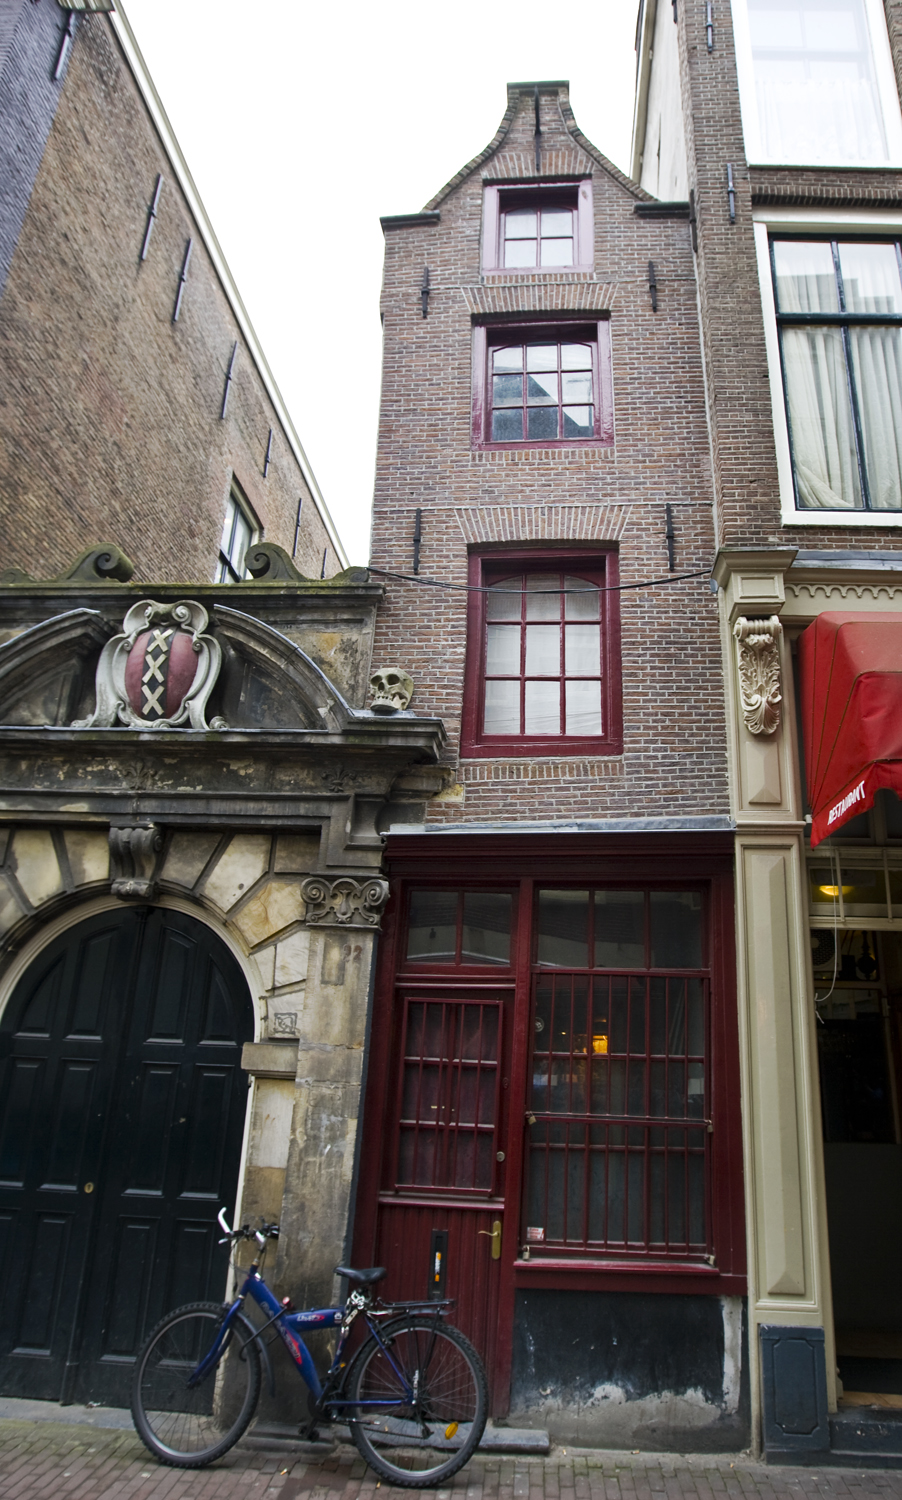 Narrowest House In Amsterdam